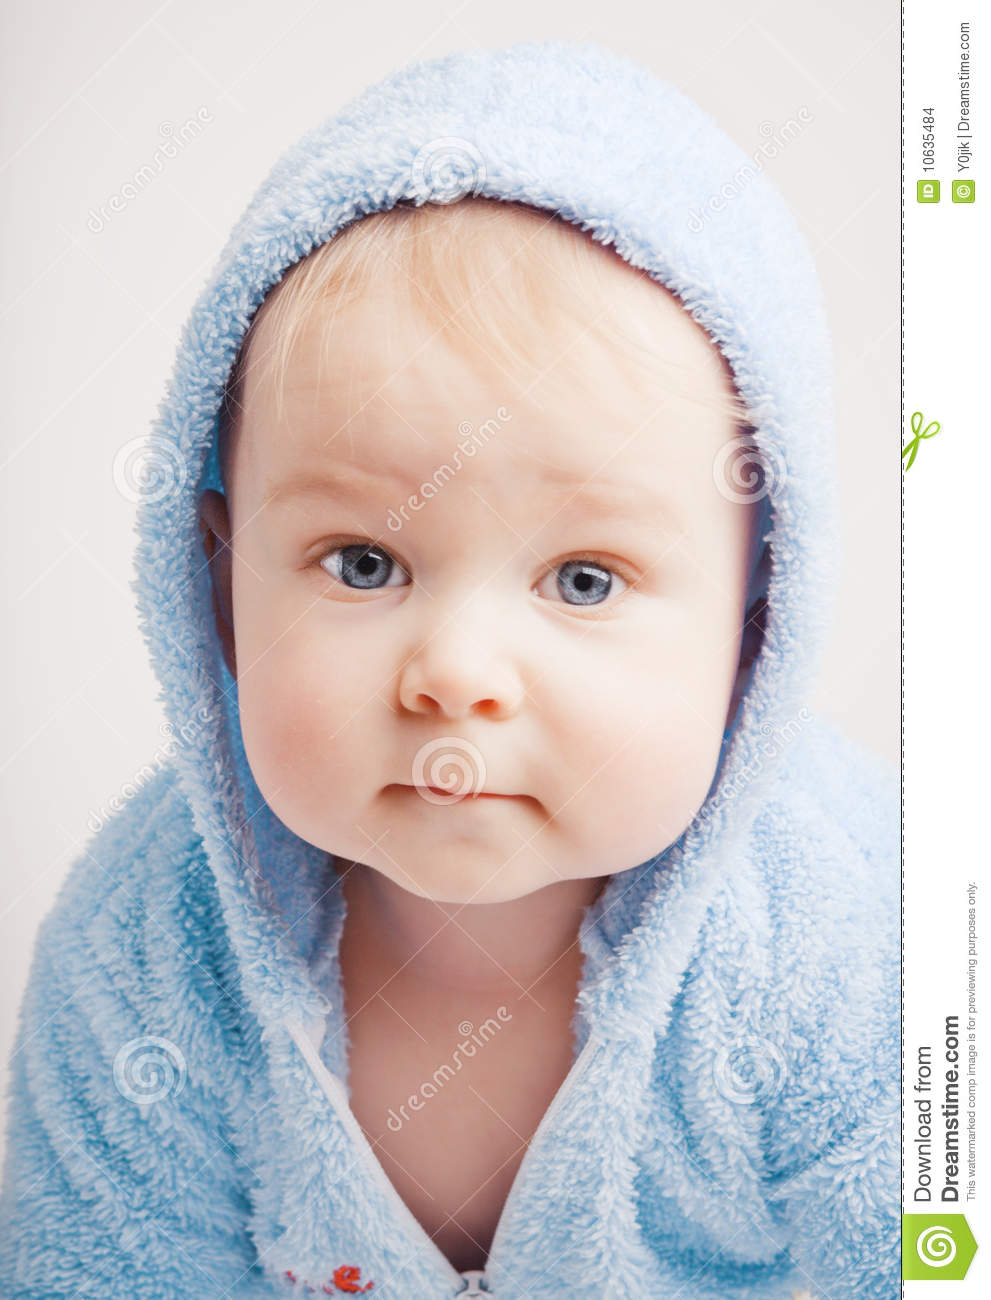 small boy in blue overalls stock photo 10635484 megapixl